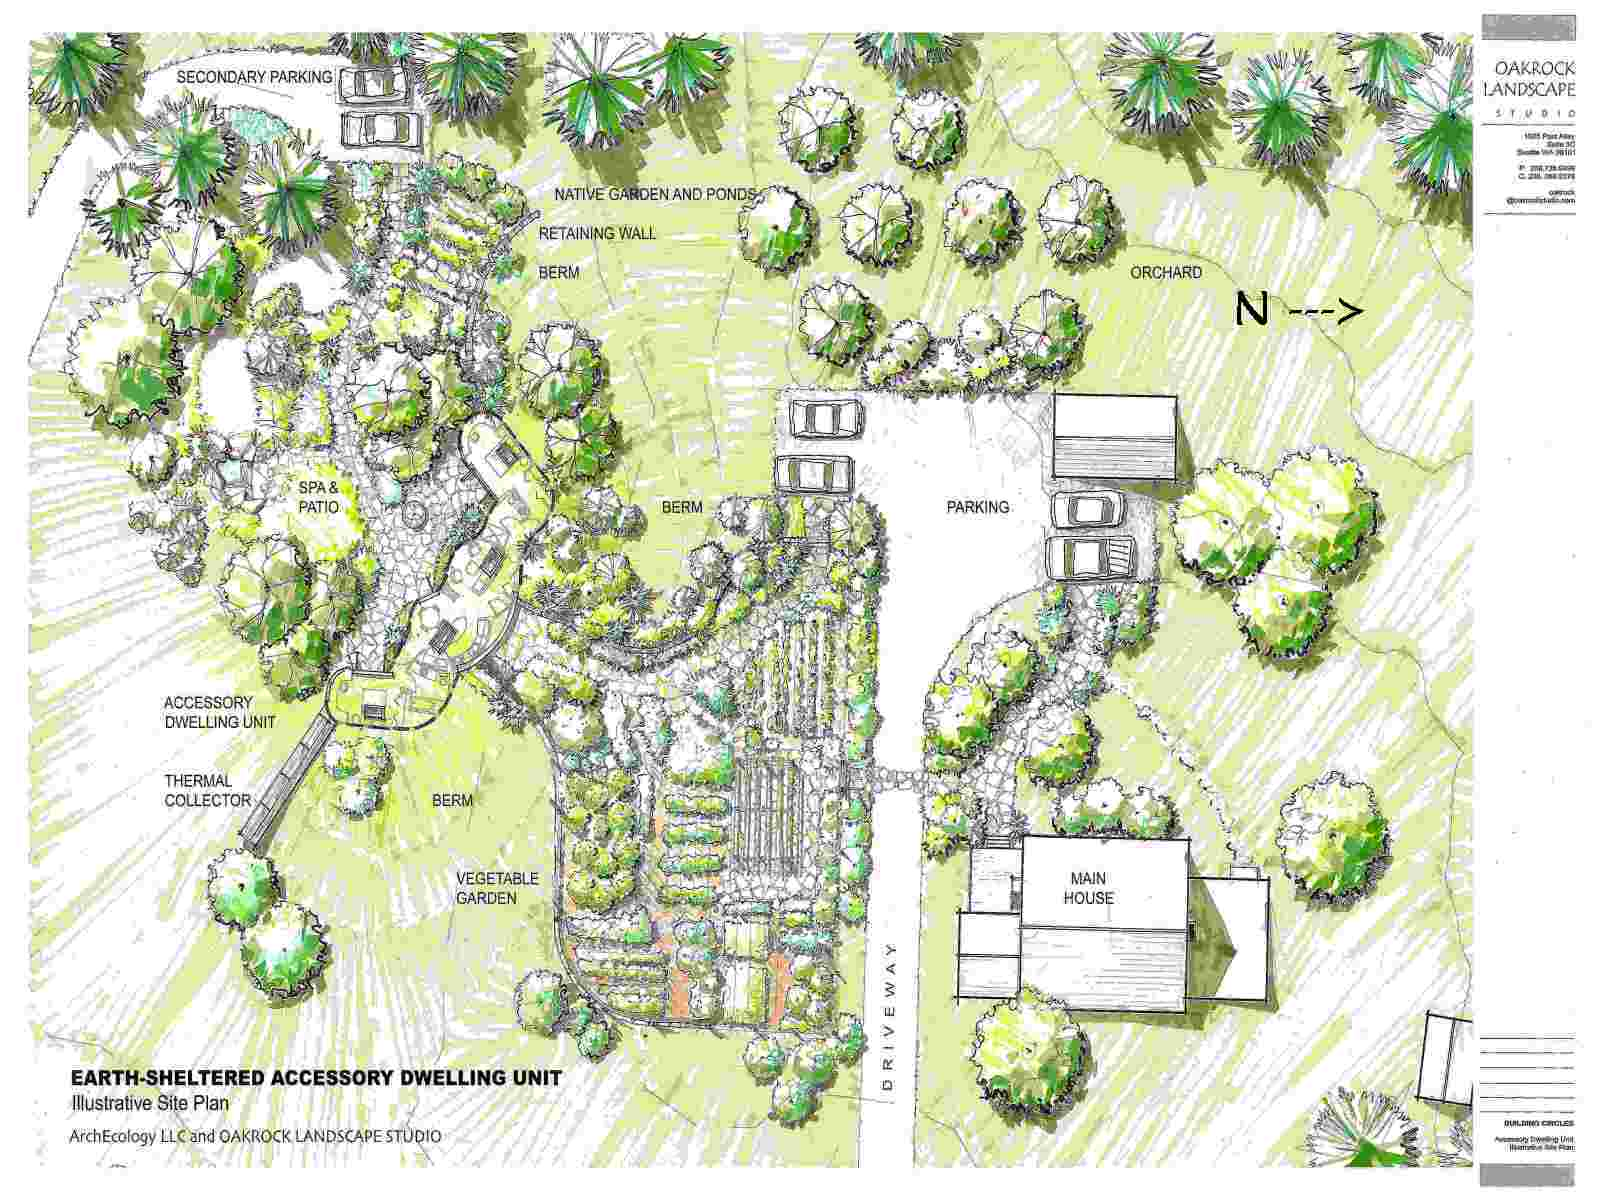 buildingcircles community home illustrative site plan courtesy of